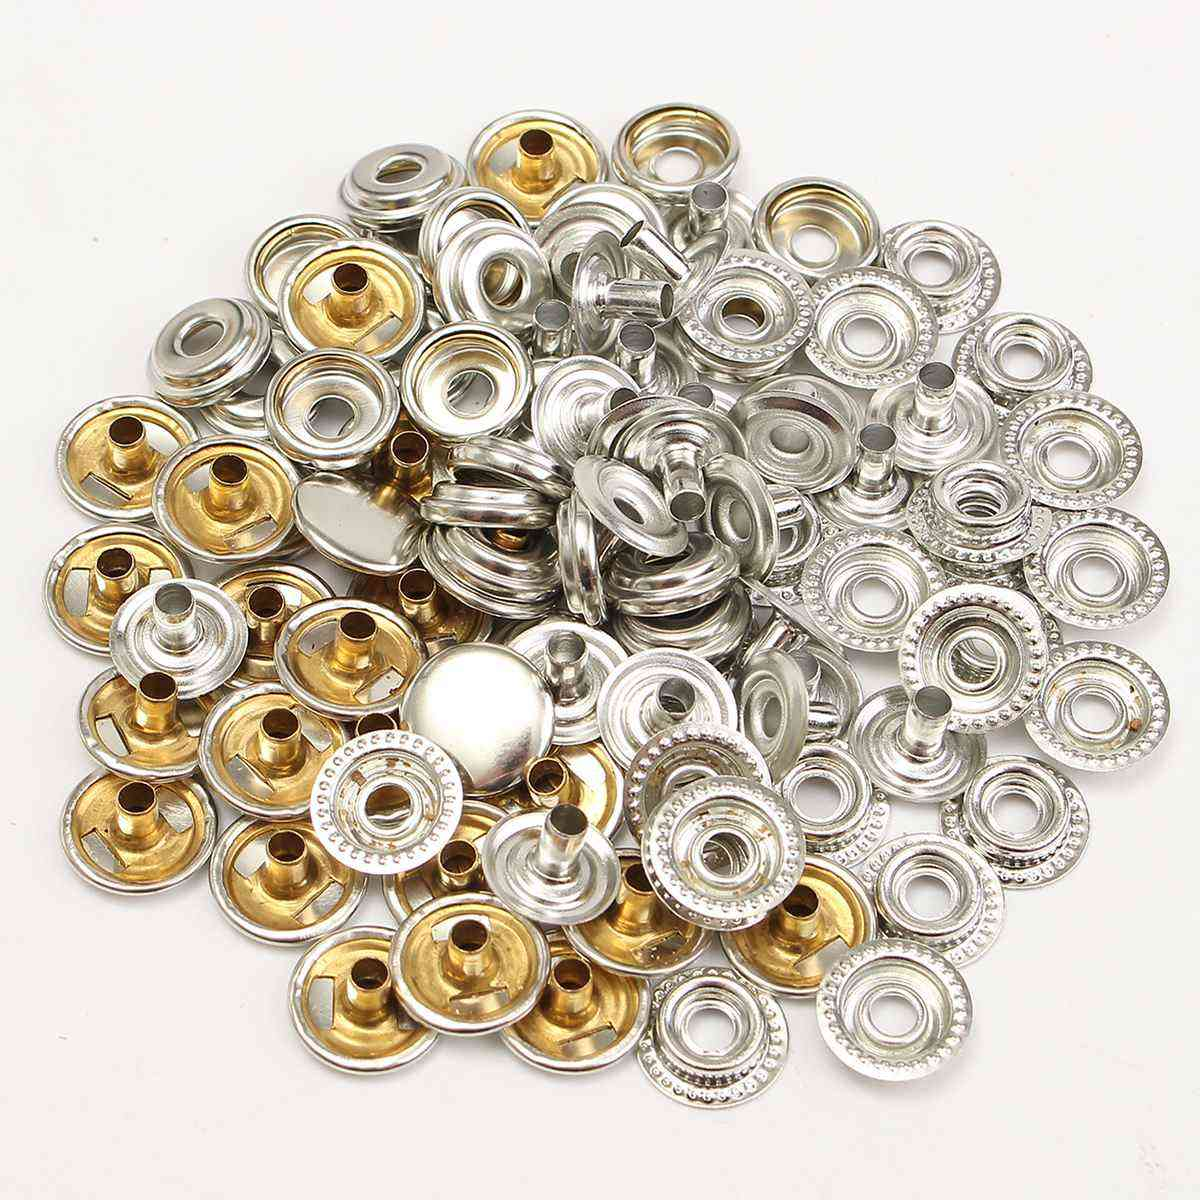 Stainless Steel Fastener Snap Press Stud Buttons - Marine Boat Canvas Leather Craft Silver Buttons